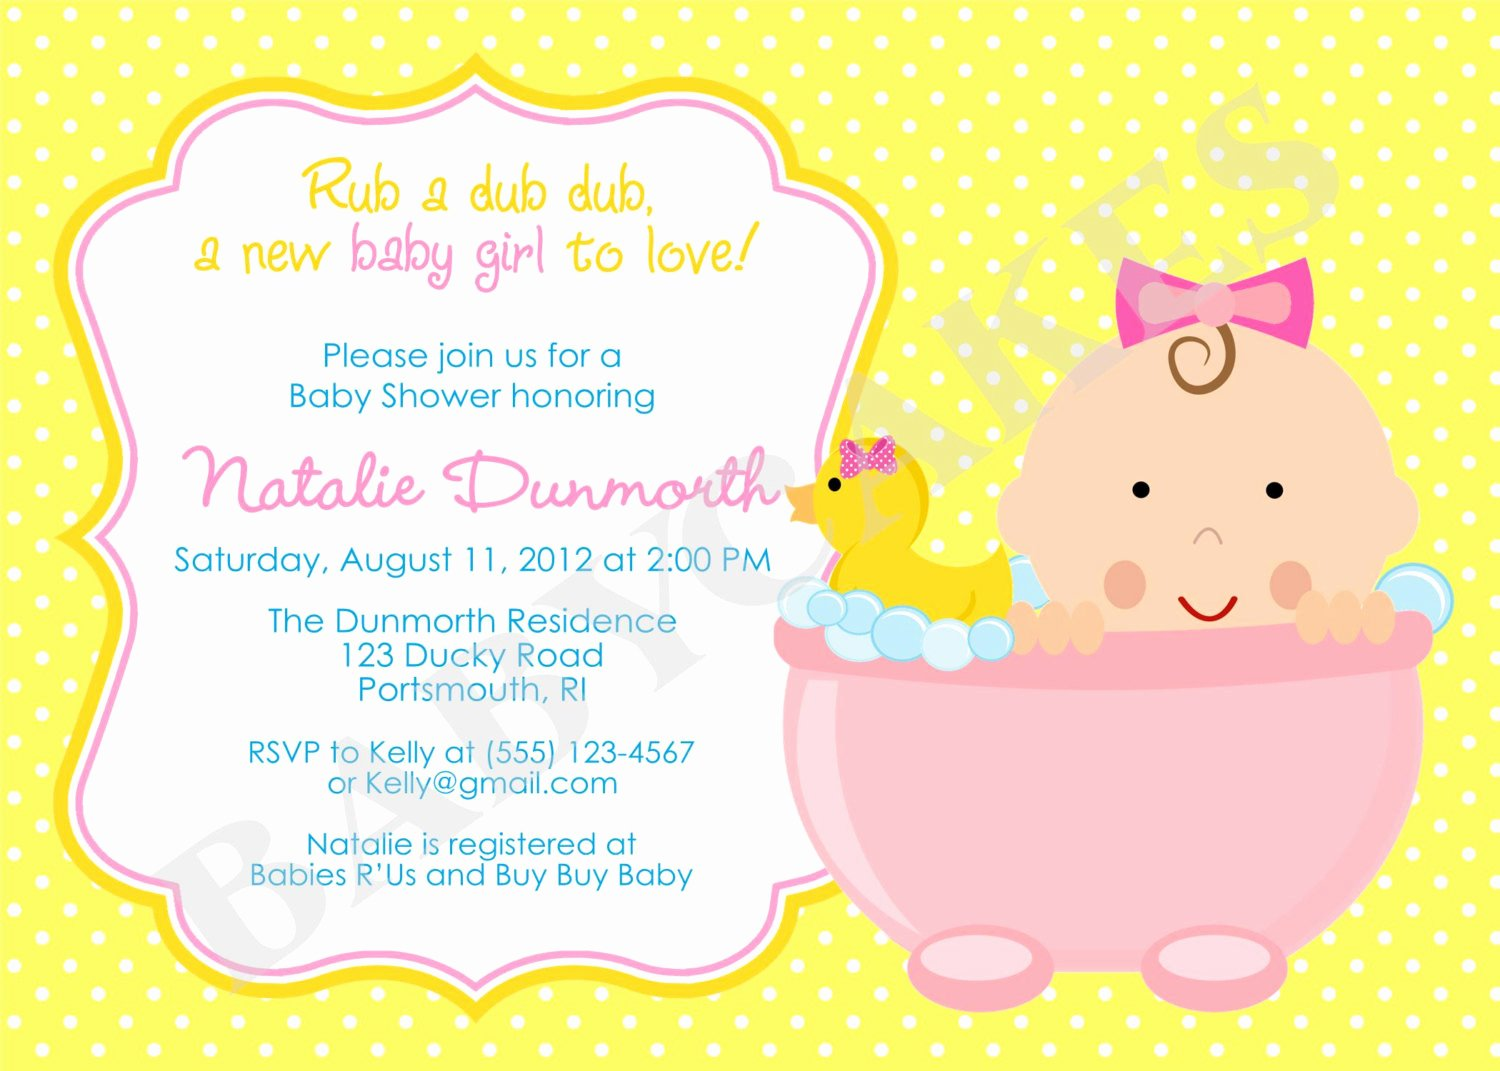 Baby Announcement Template Free Luxury How to Plan Rubber Ducky Baby Shower Ideas